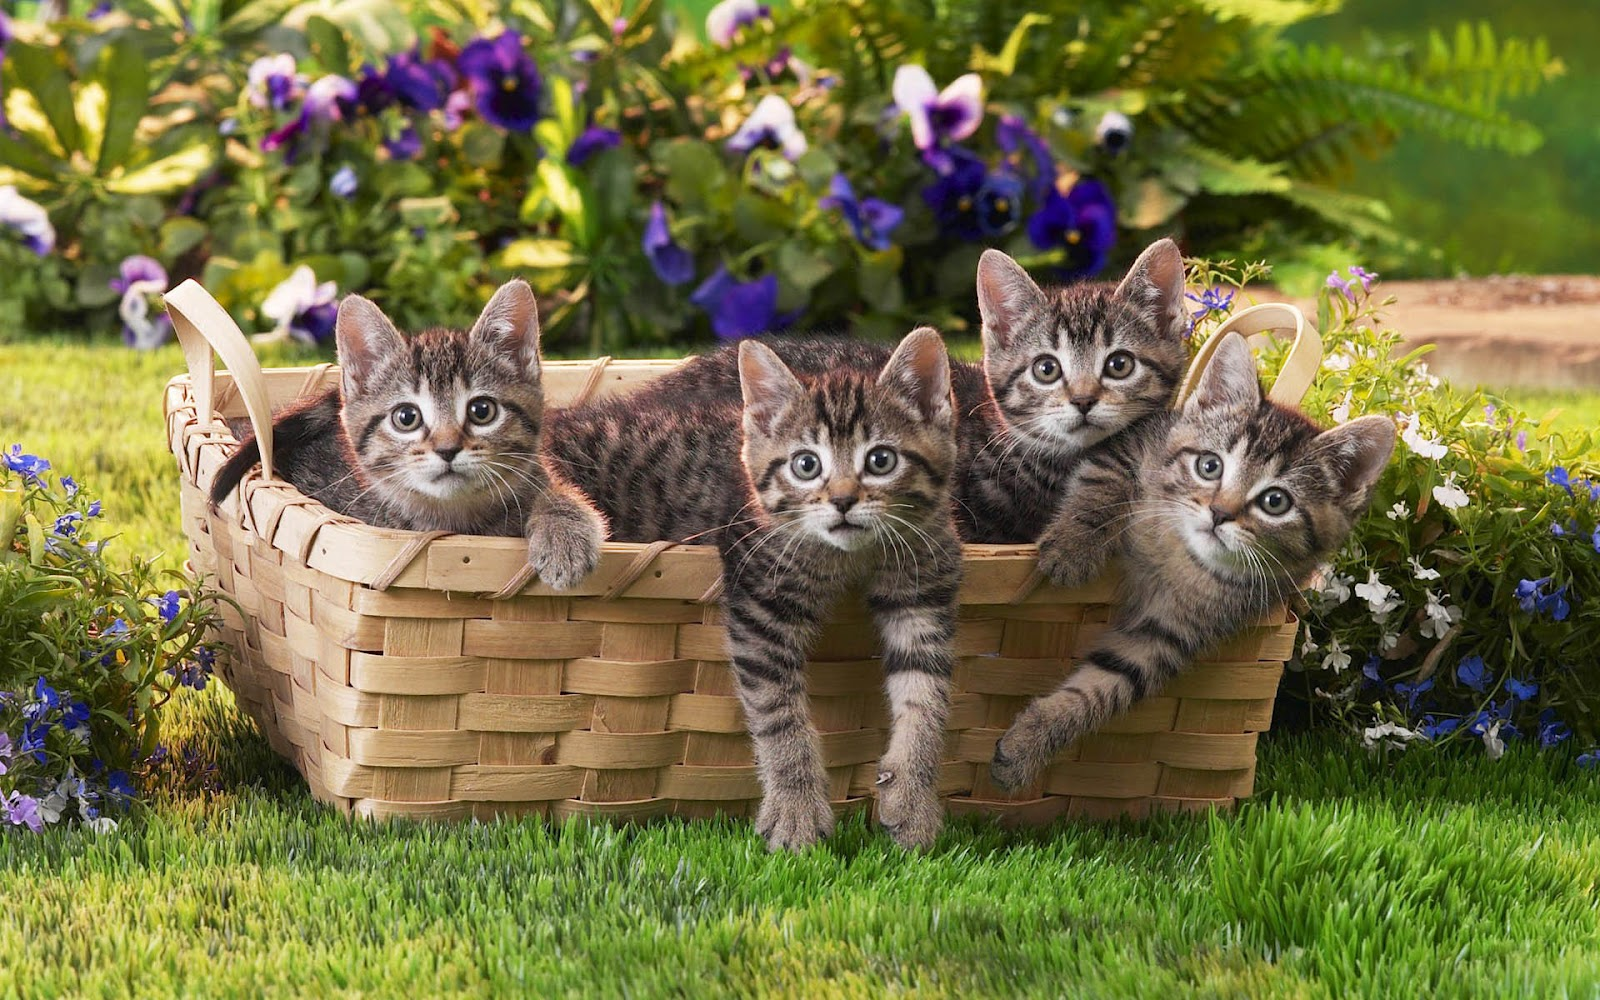 Wallpaper download pagalworld - Funny Photo With Cute Little Cats In A Basket